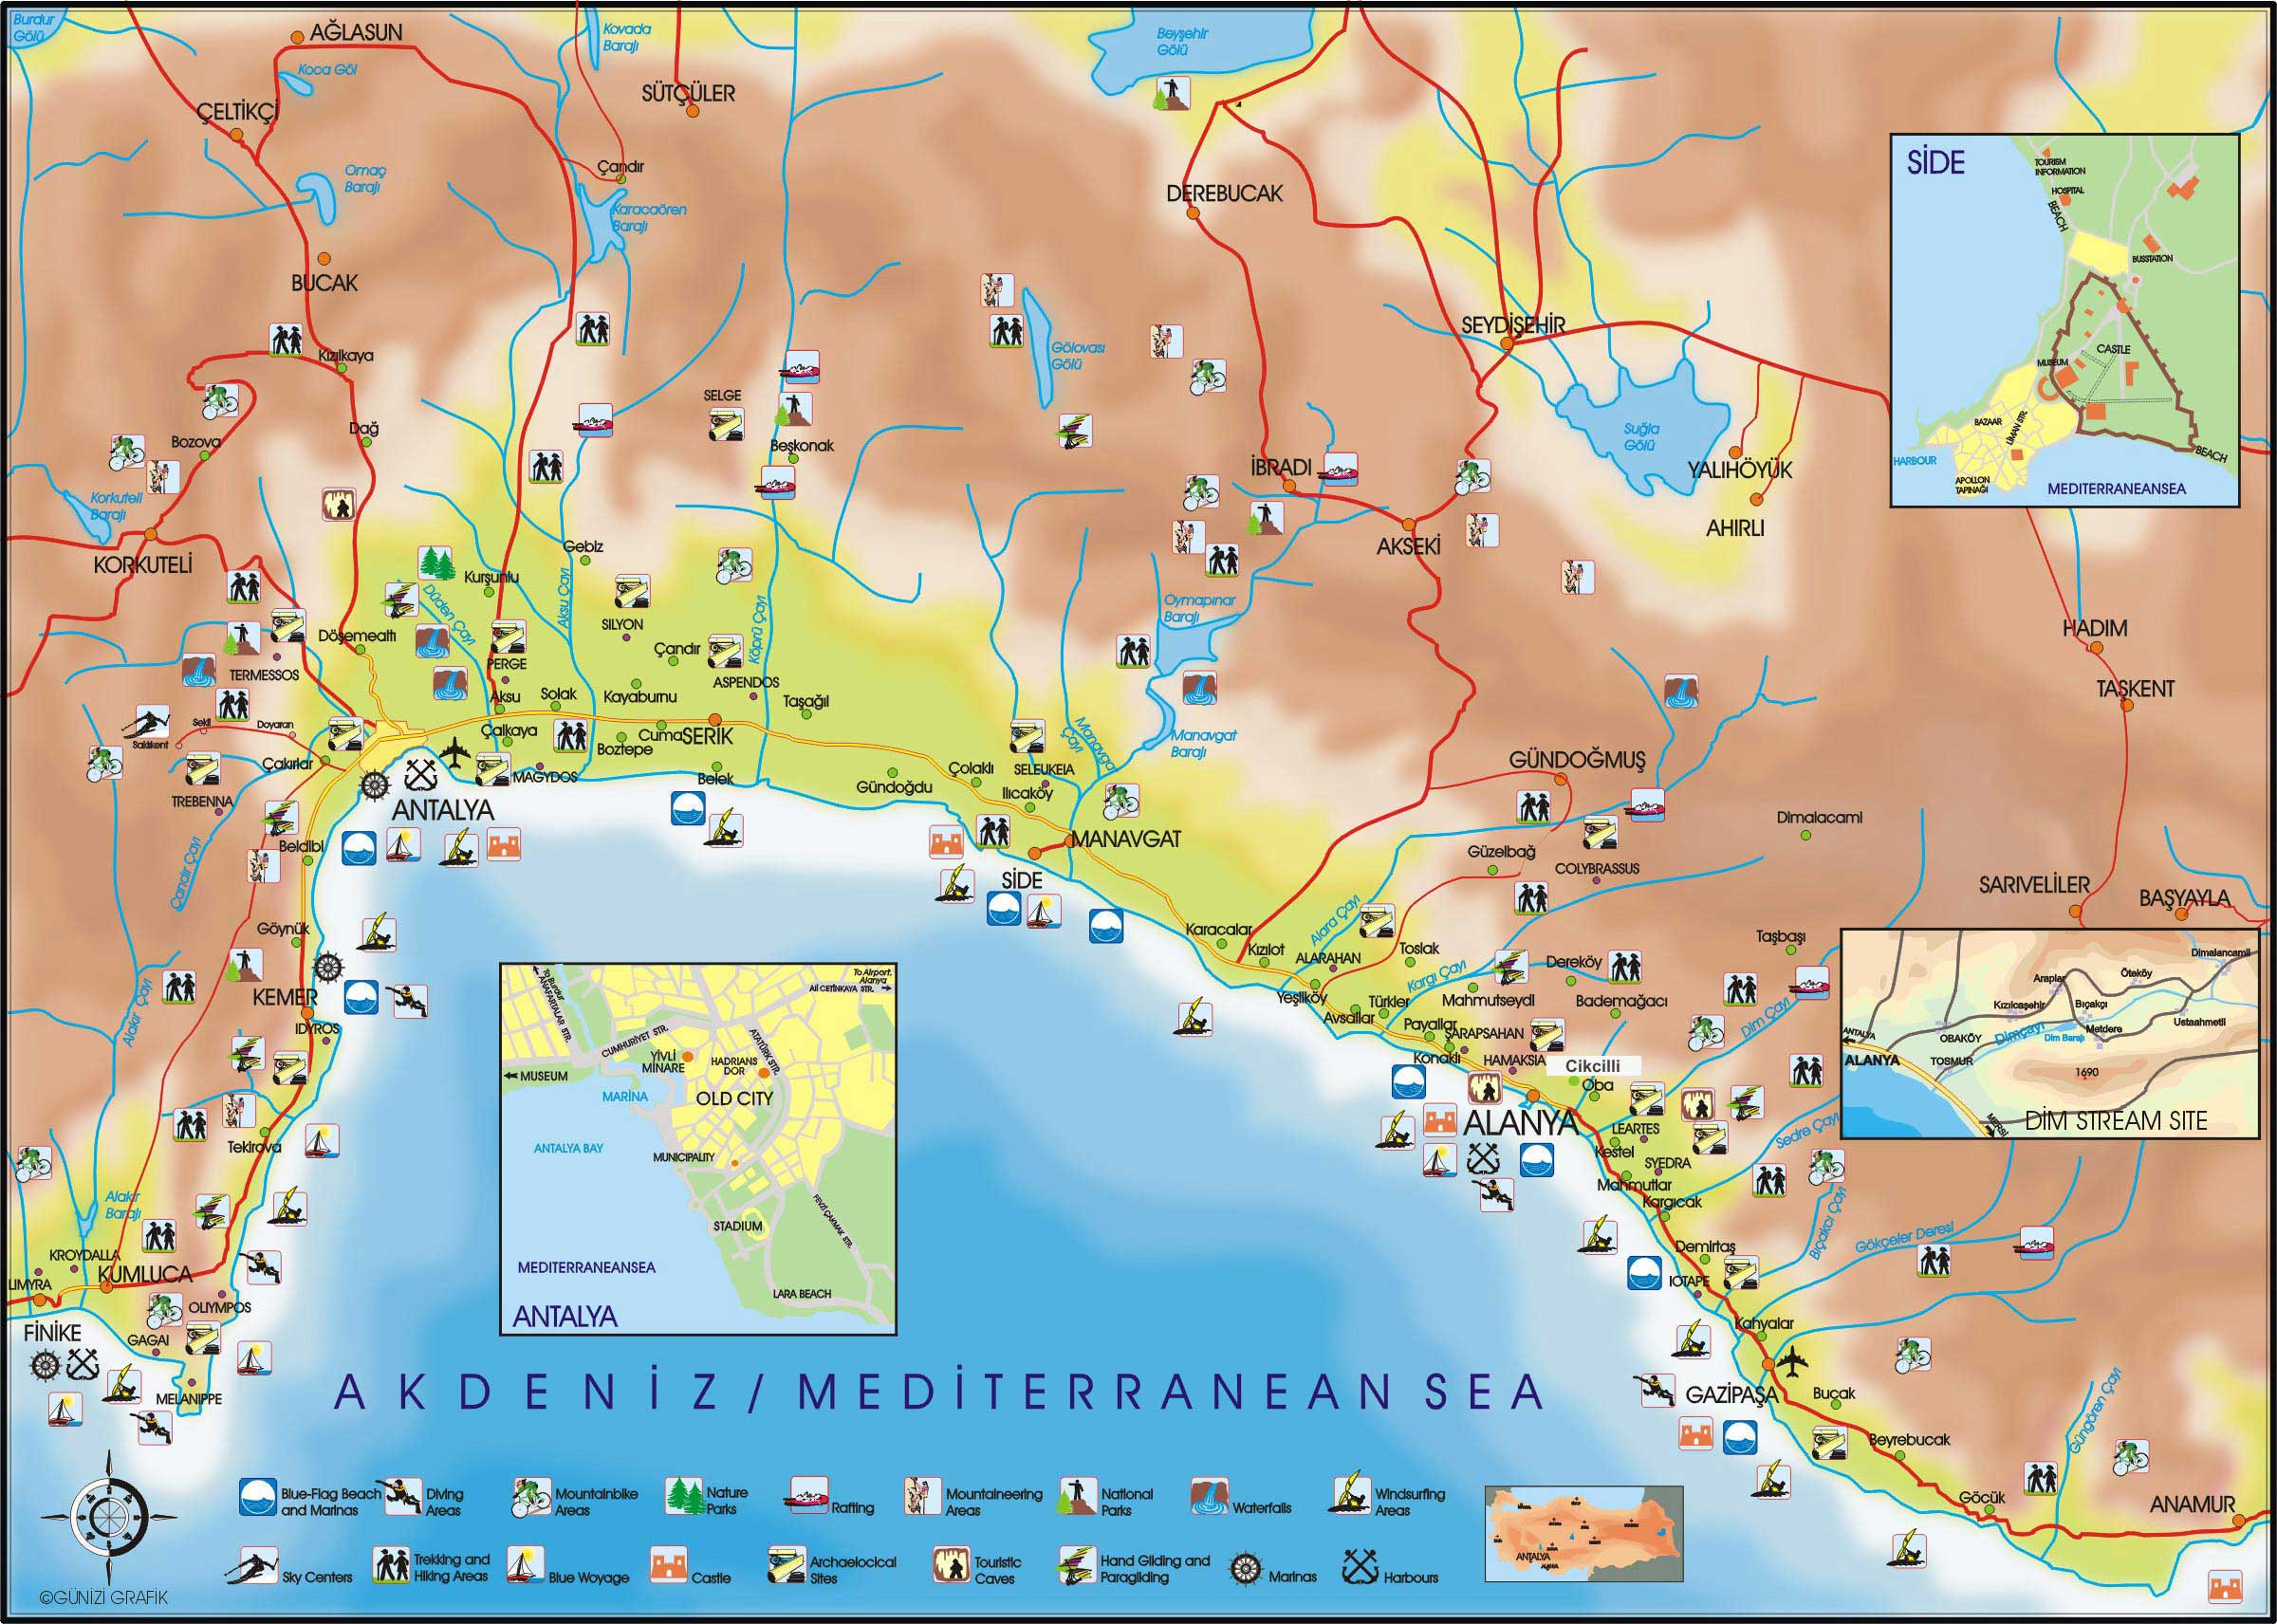 Antalya Region Tourist Map Antalya Turkey mappery